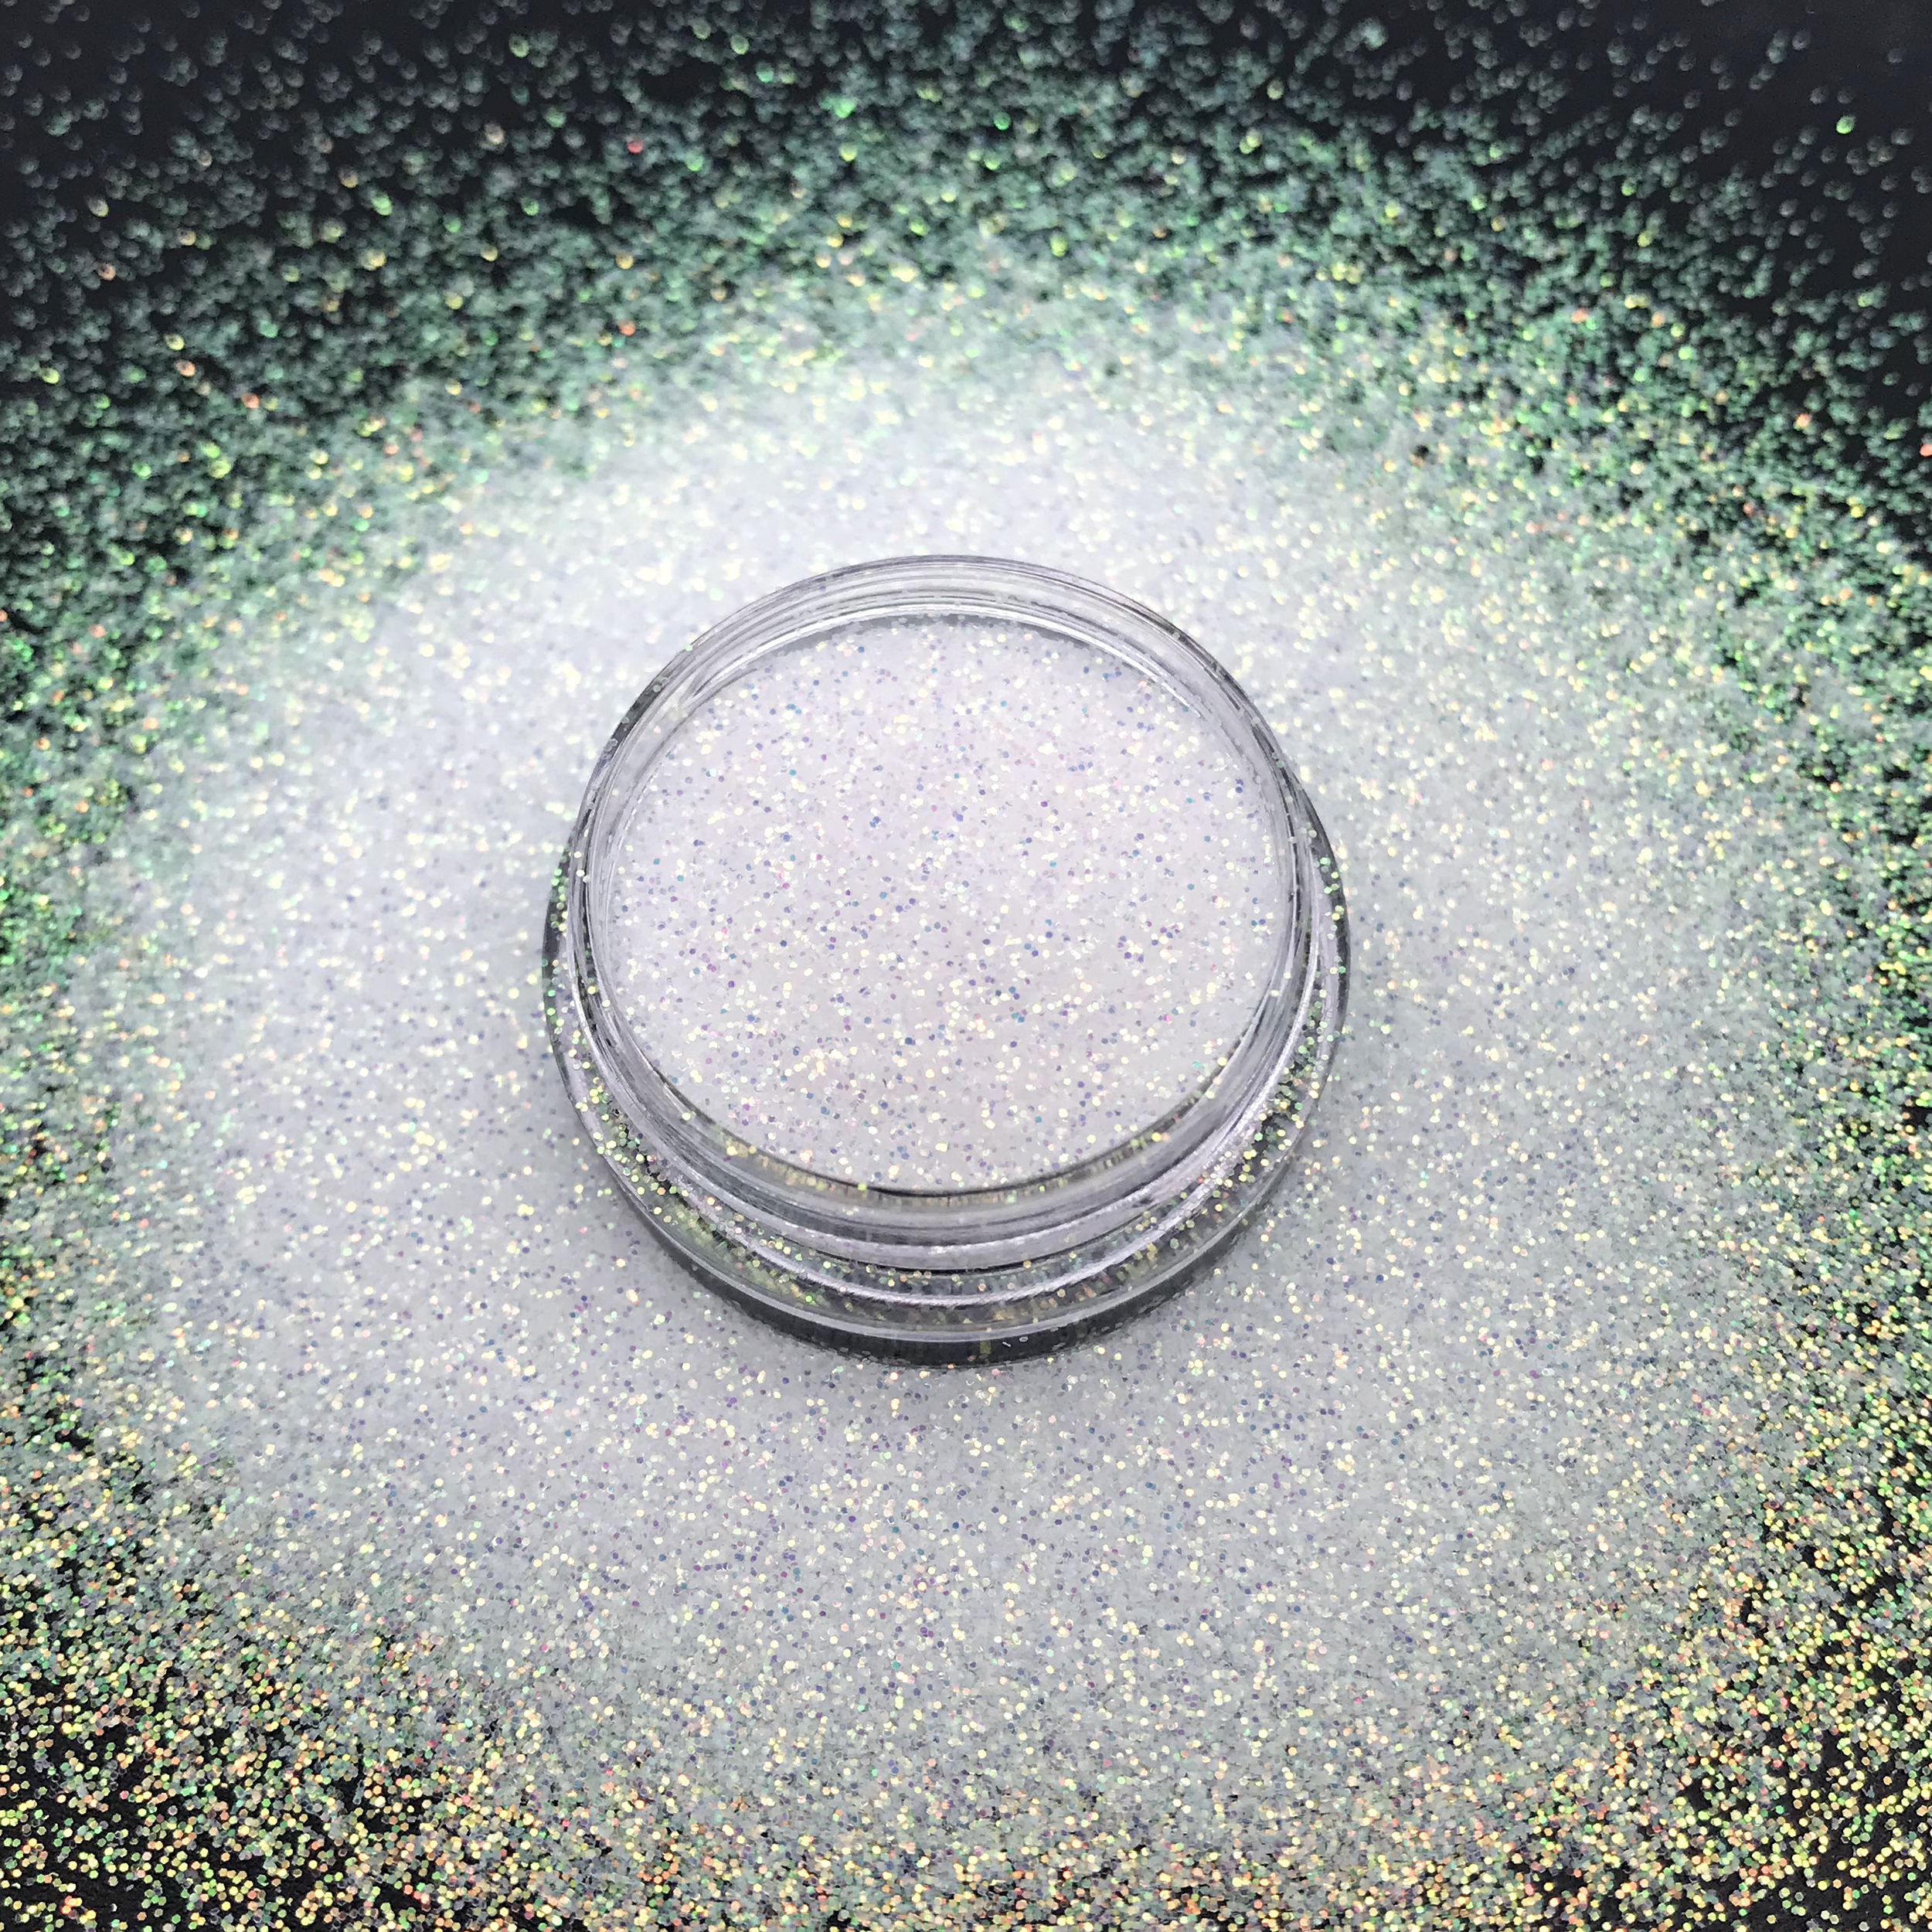 Top Selling polyester iridescent glitter superfine white fine glitter for makeup Crafts